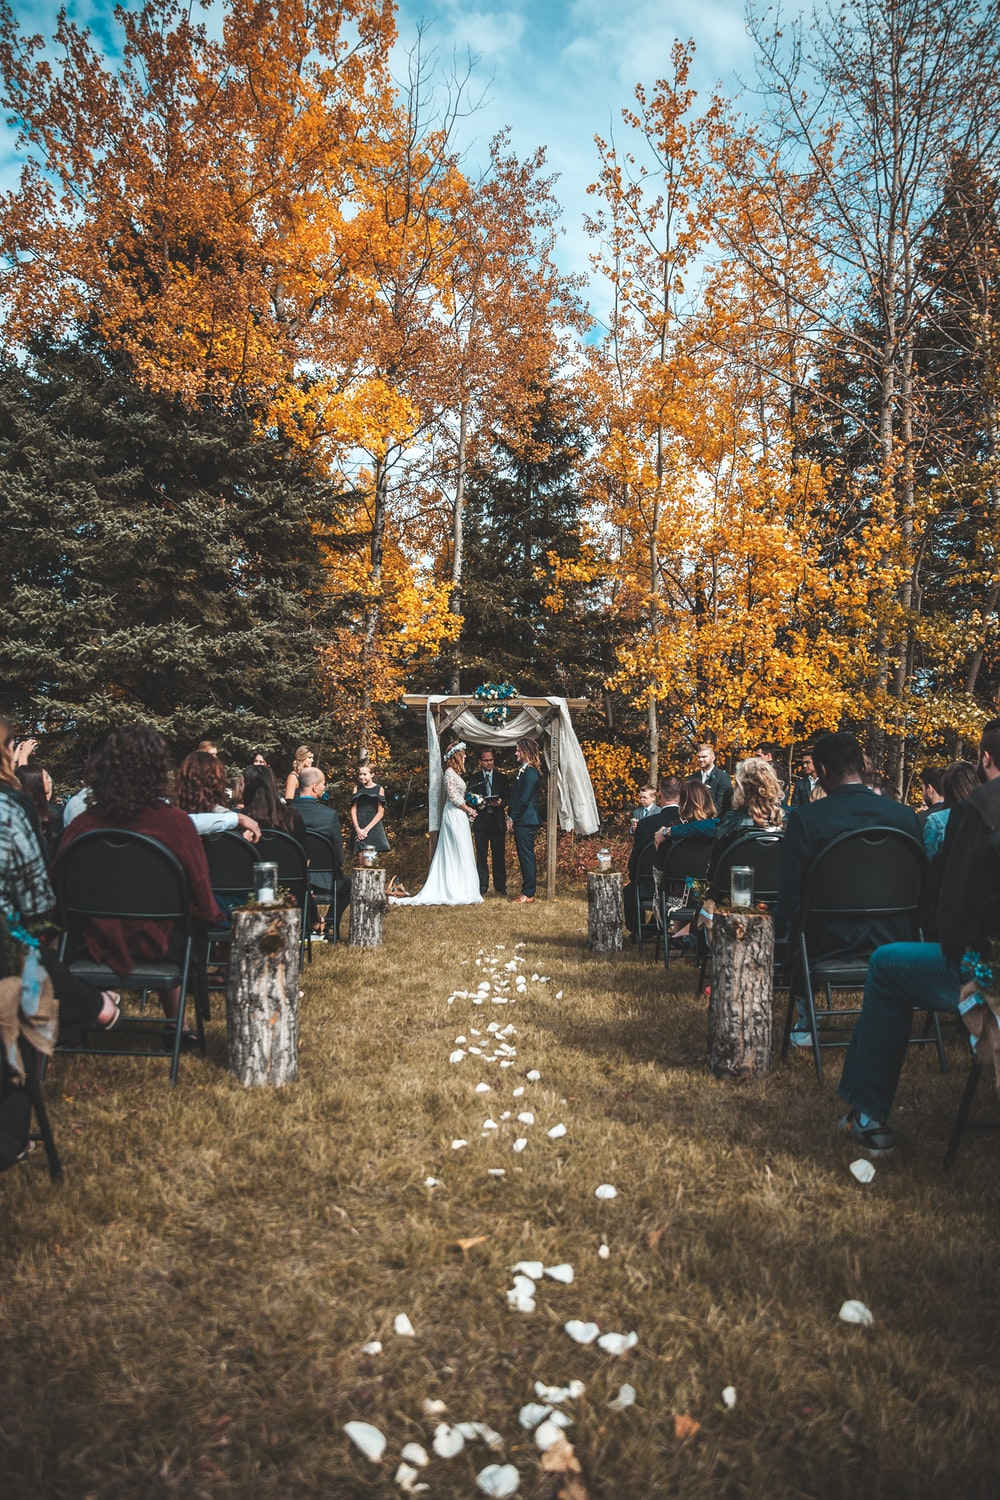 wedding ceremony beside fall trees during daytime